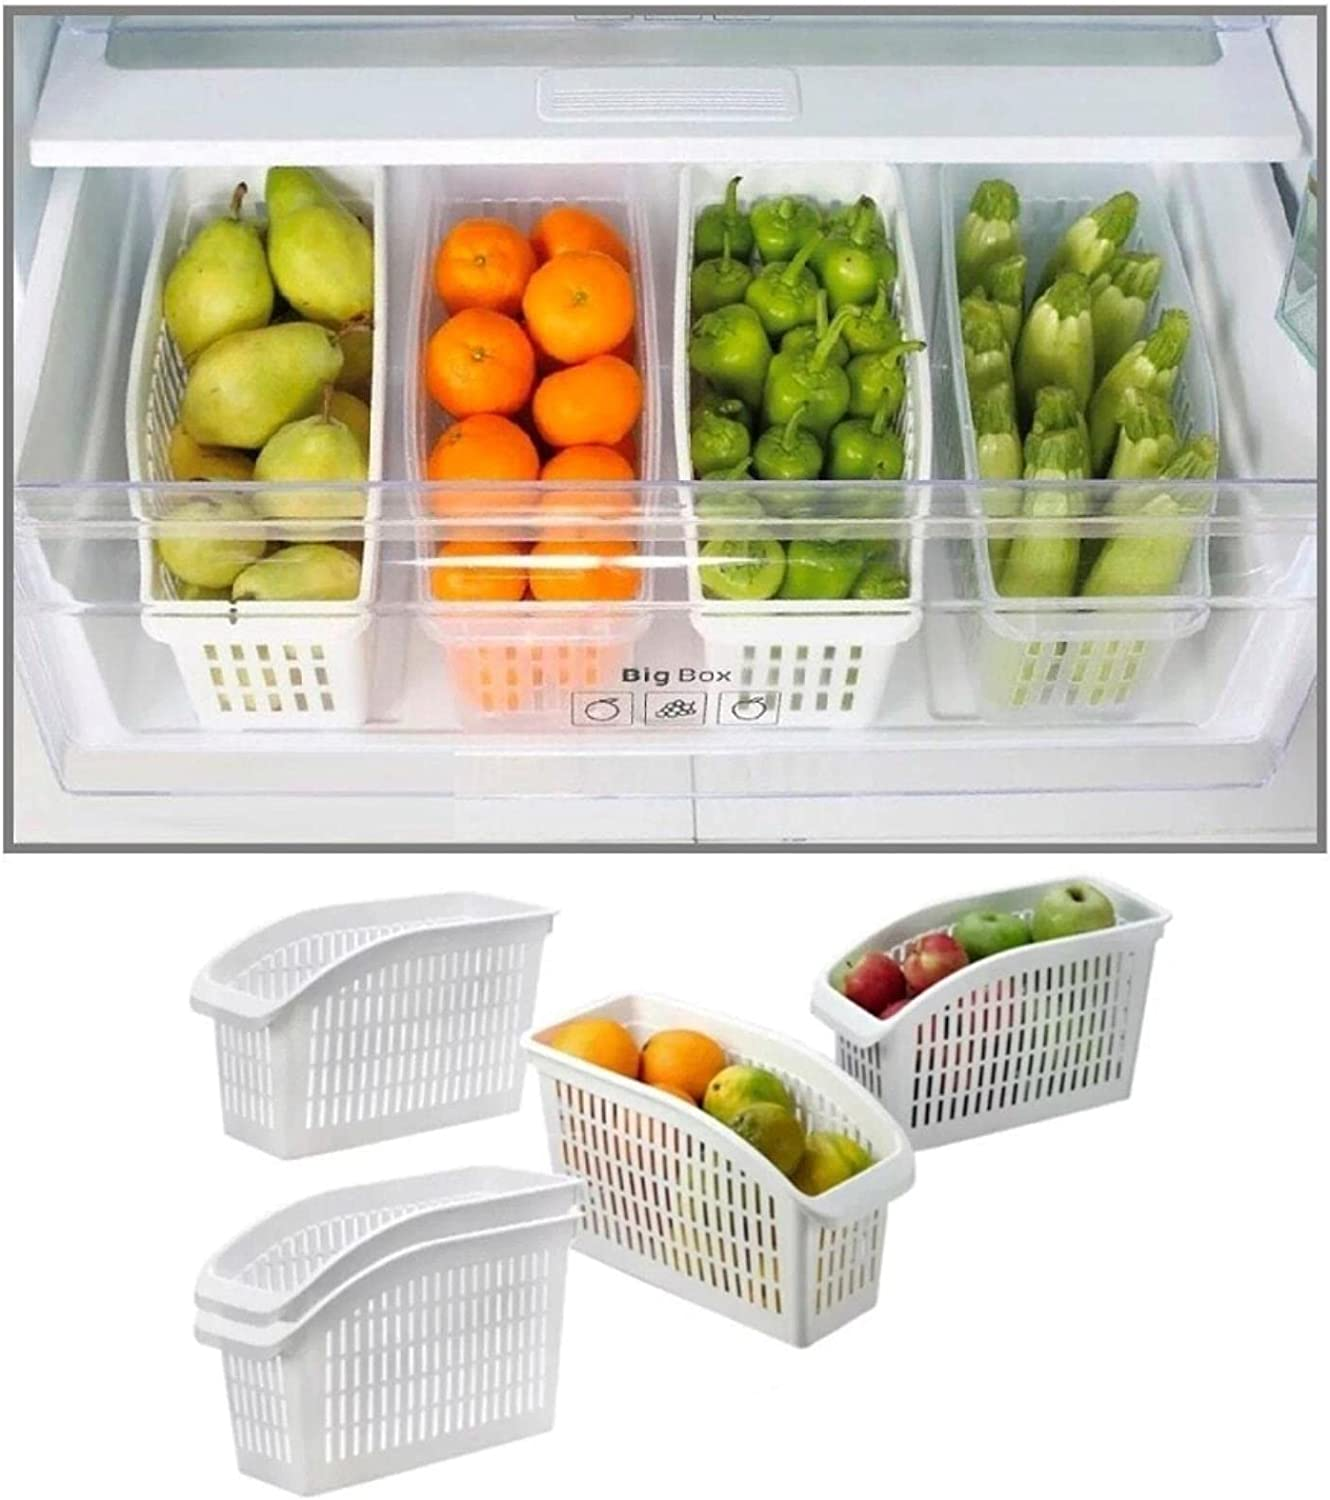 RRLL Kitchen Organizer Drawer Basket Quantity limited Fresh Manufacturer direct delivery Container Lay Spacer